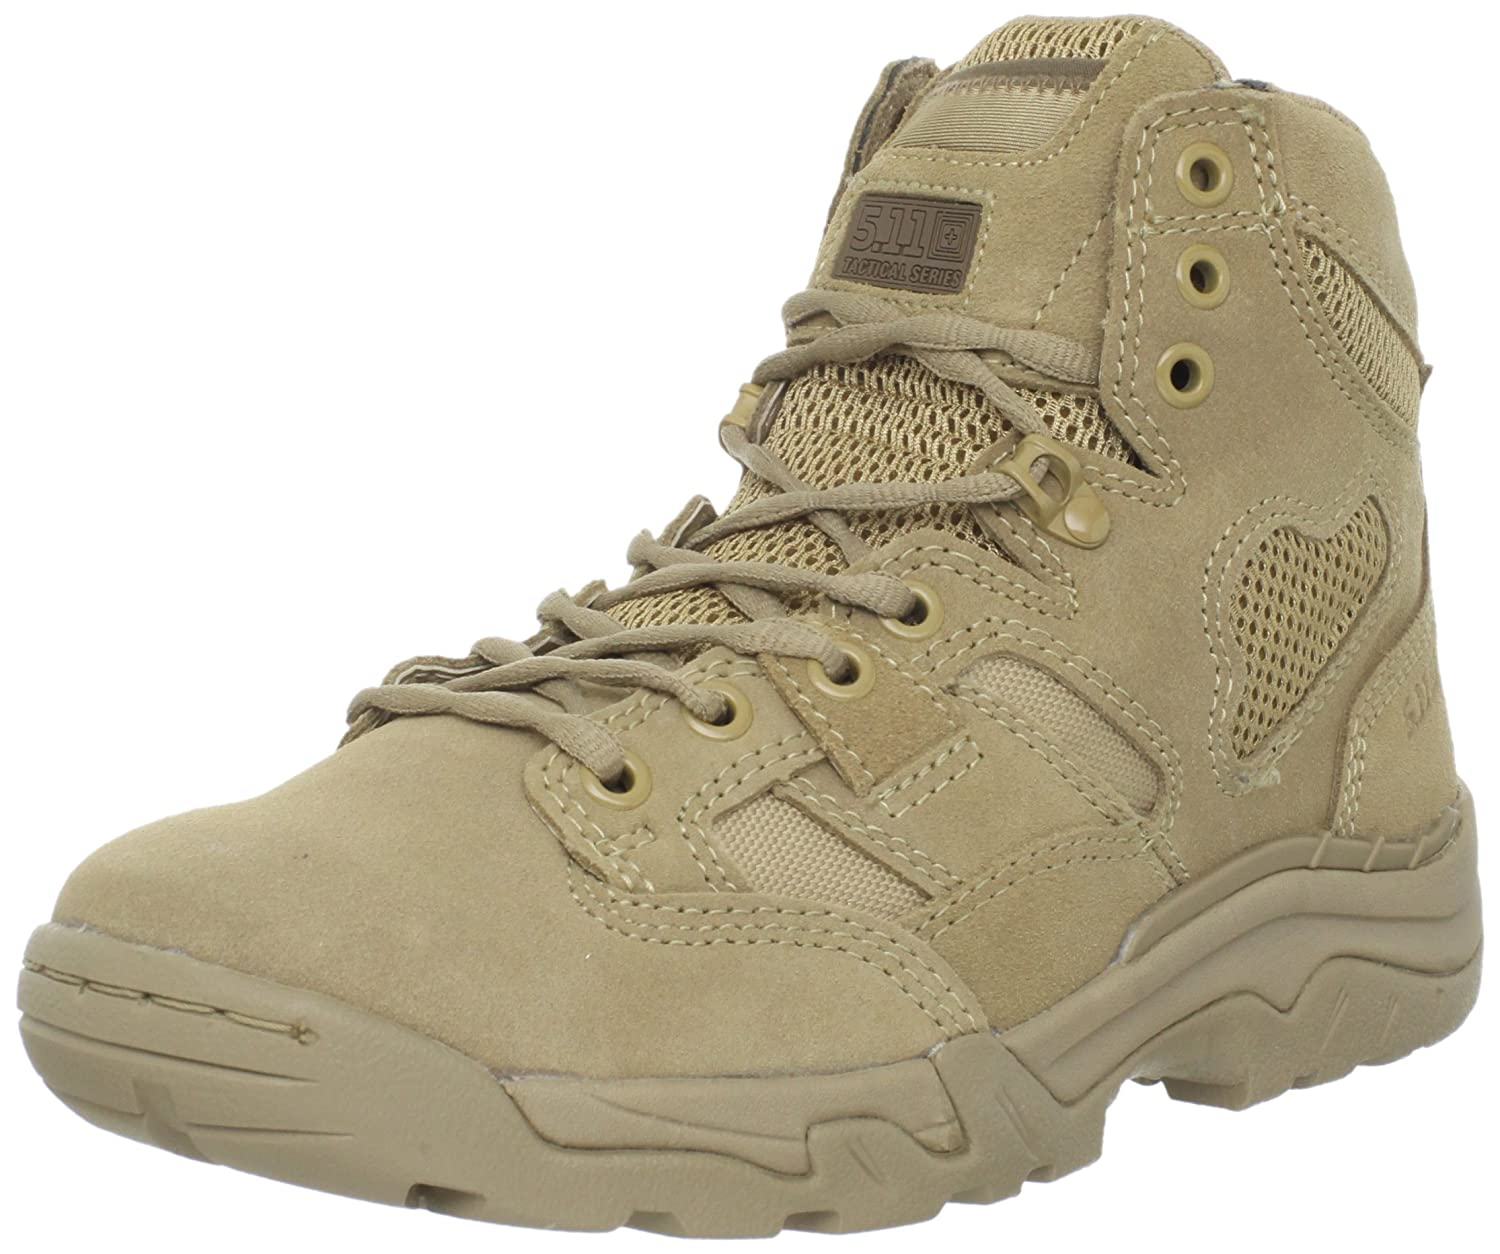 Top 10 Best Military Tactical Boots For Men Reviews 2019